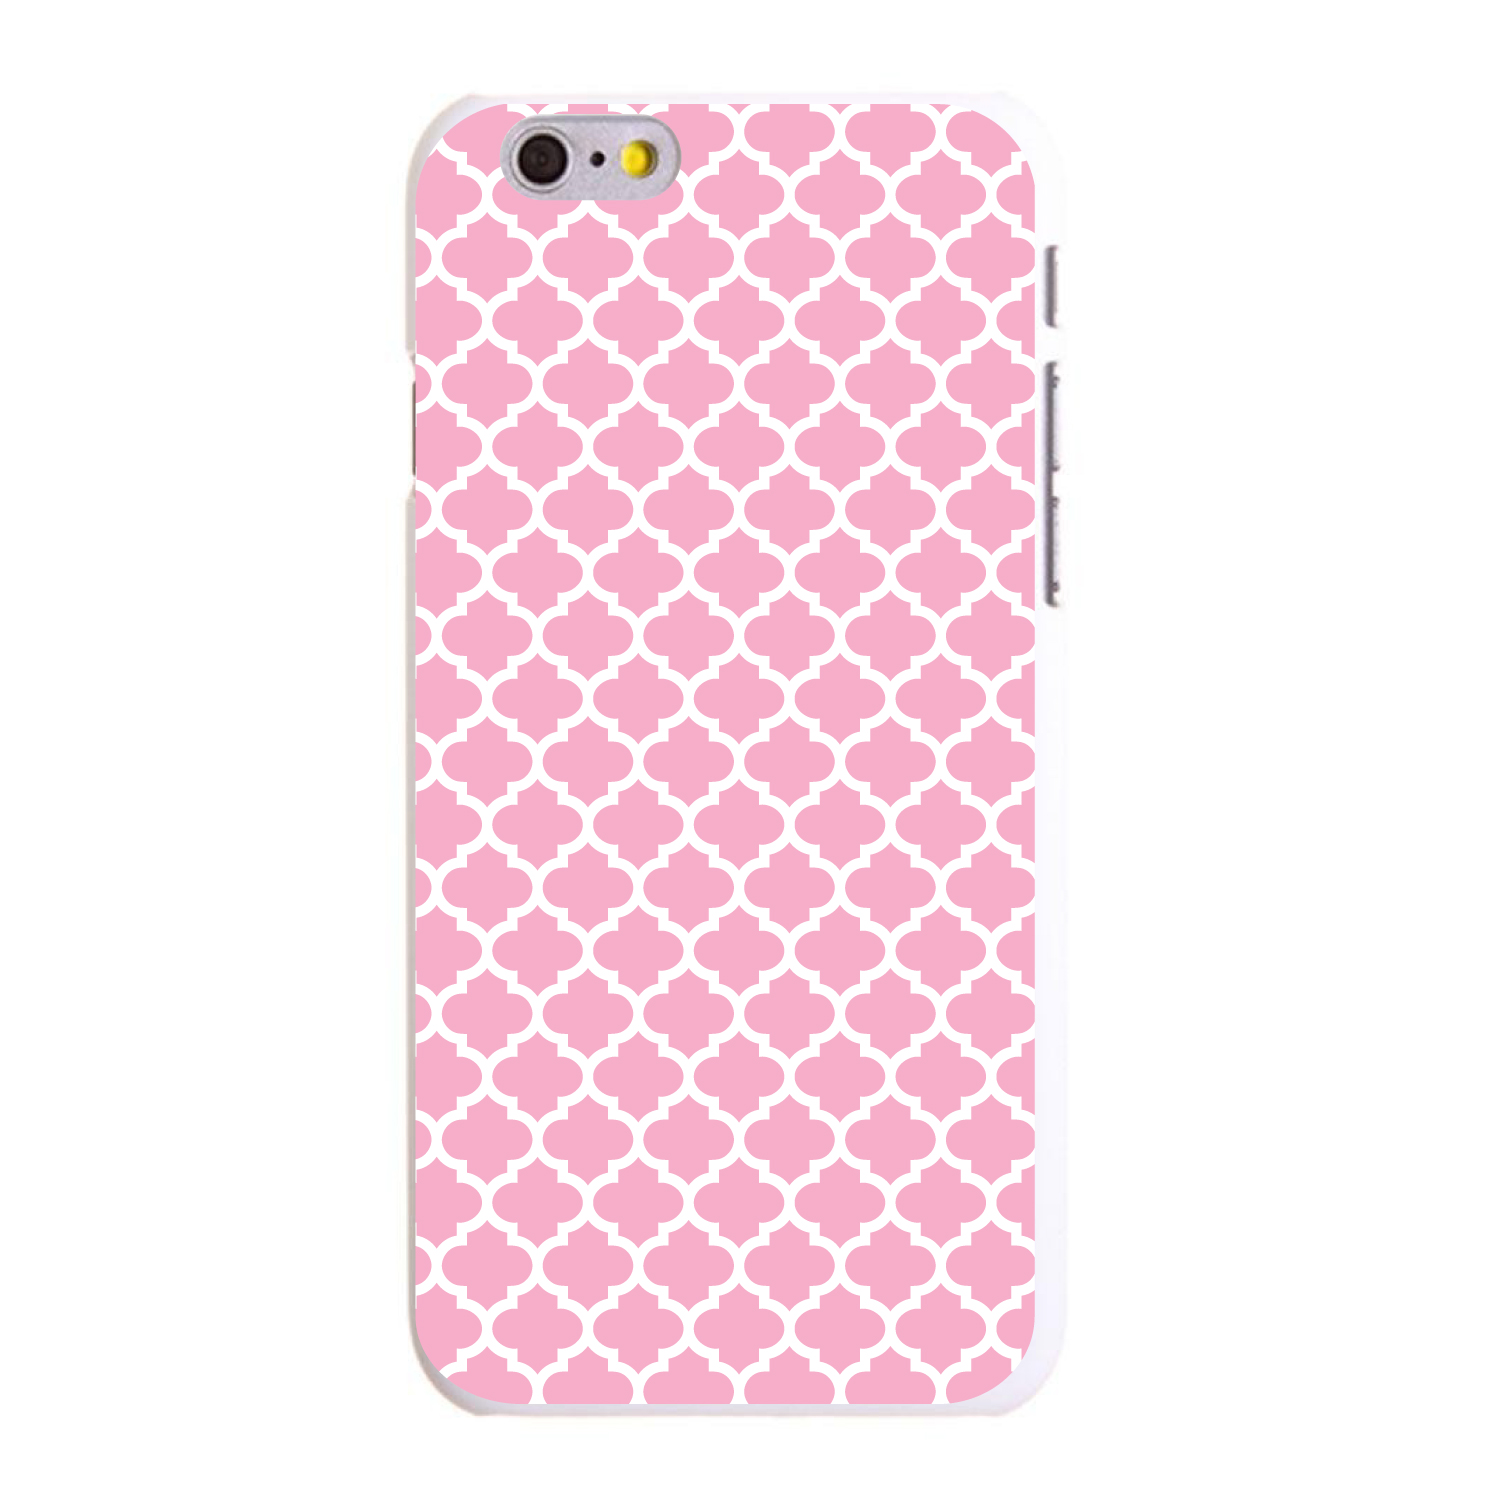 """CUSTOM White Hard Plastic Snap-On Case for Apple iPhone 6 / 6S (4.7"""" Screen) - Pink White Moroccan Lattice"""